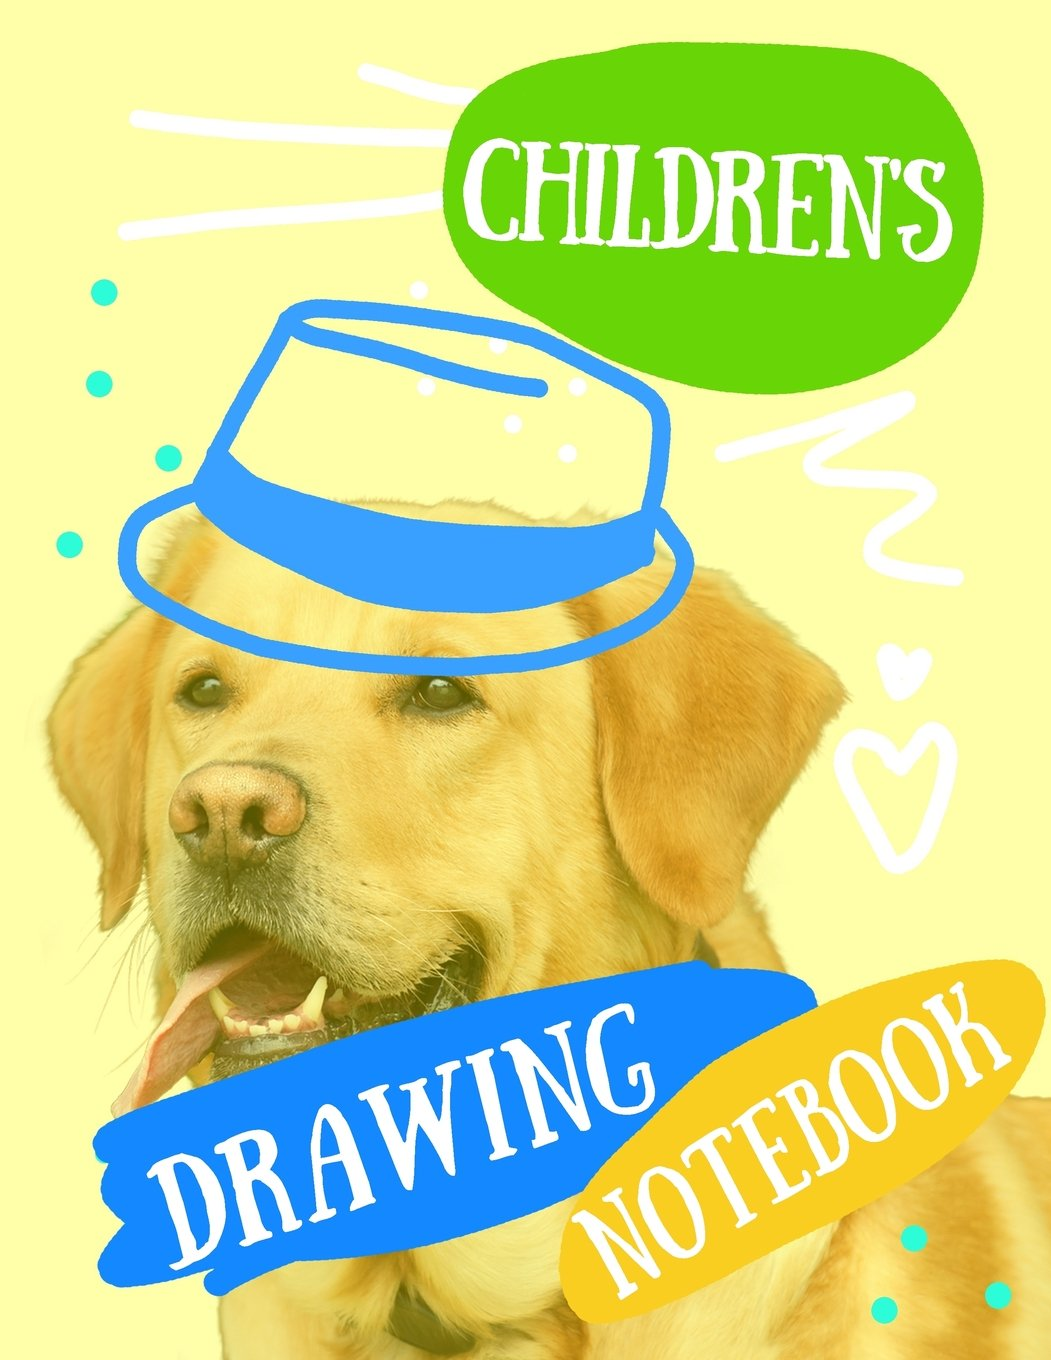 children-s-drawing-notebook-8-5-x-11-120-unlined-blank-pages-for-unguided-doodling-drawing-sketching-writing